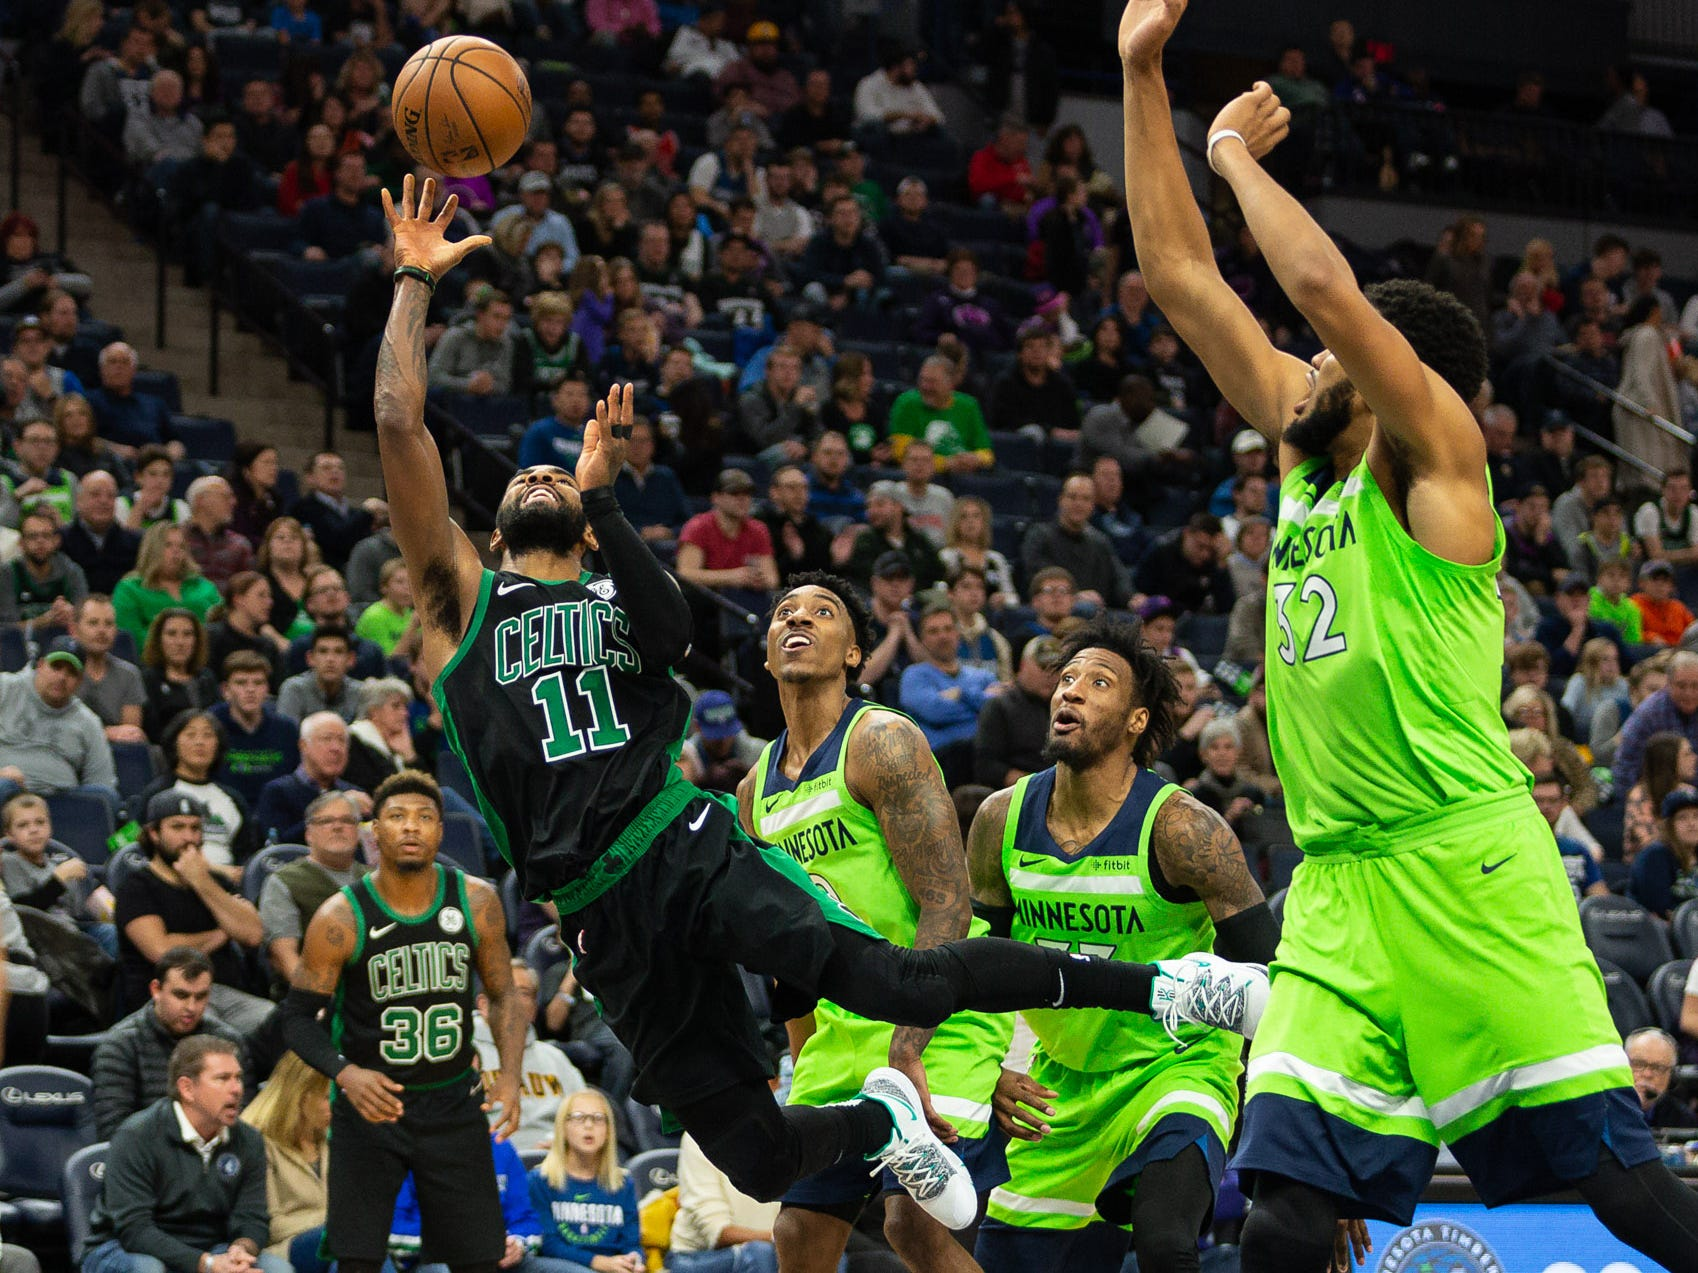 Dec. 1: Celtics guard Kyrie Irving (11) goes careening down the lane past a trio of Timberwolves defenders during the second half in Minneapolis.